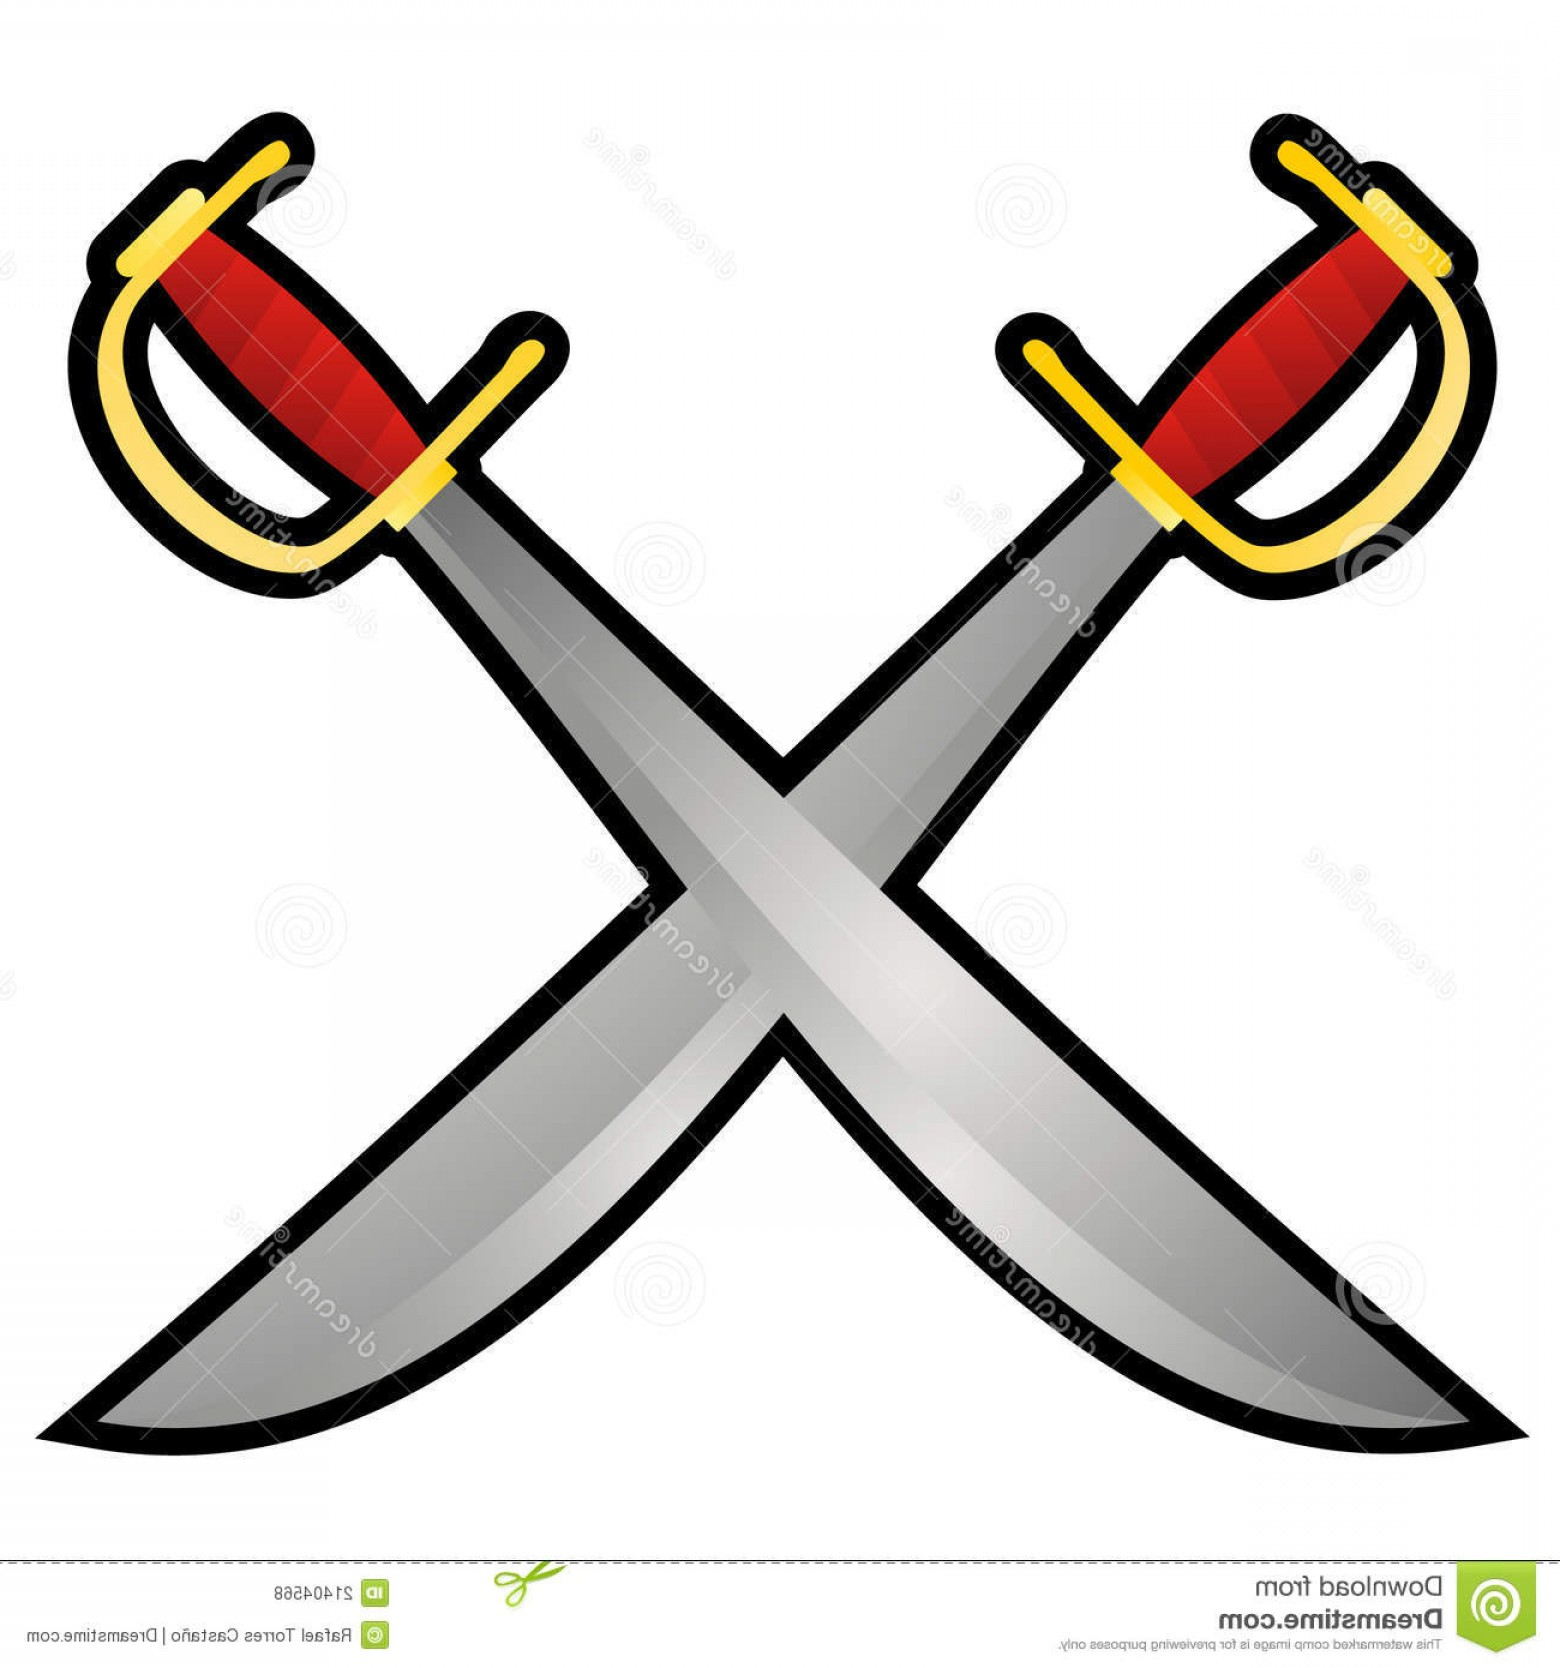 Pirate Swords Crossed Vectors: Royalty Free Stock Photos Pirate Swords Image